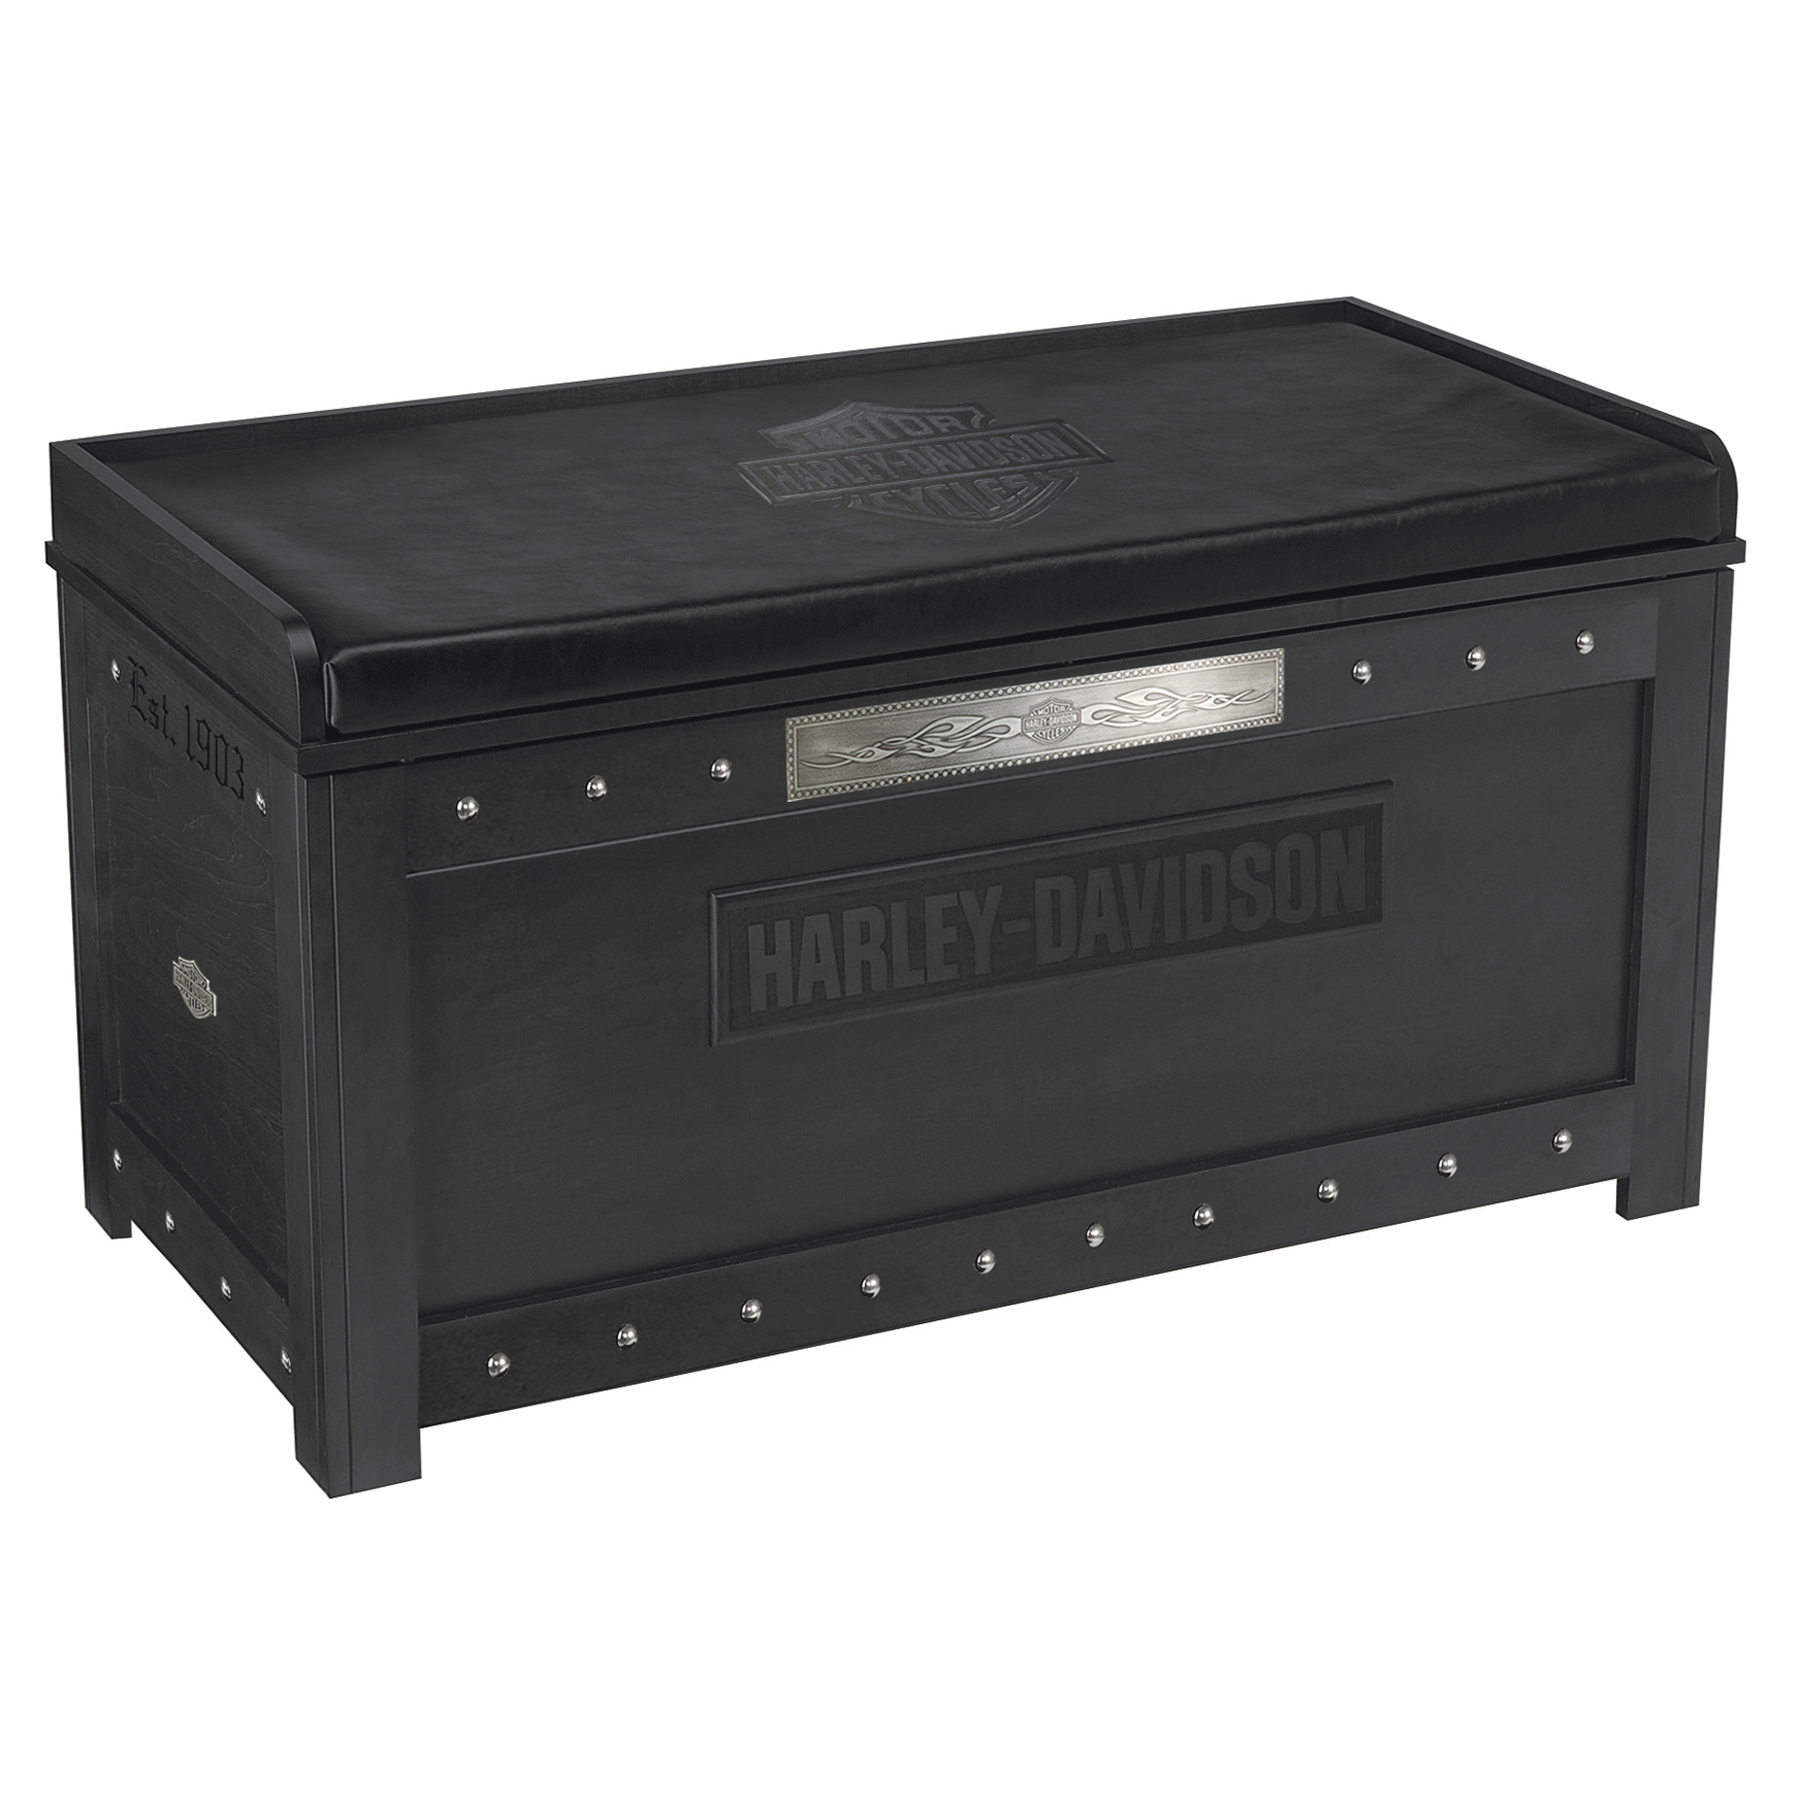 Harley-Davidson B&S Flames Storage Bench Vintage Black finish HDL-13601-V